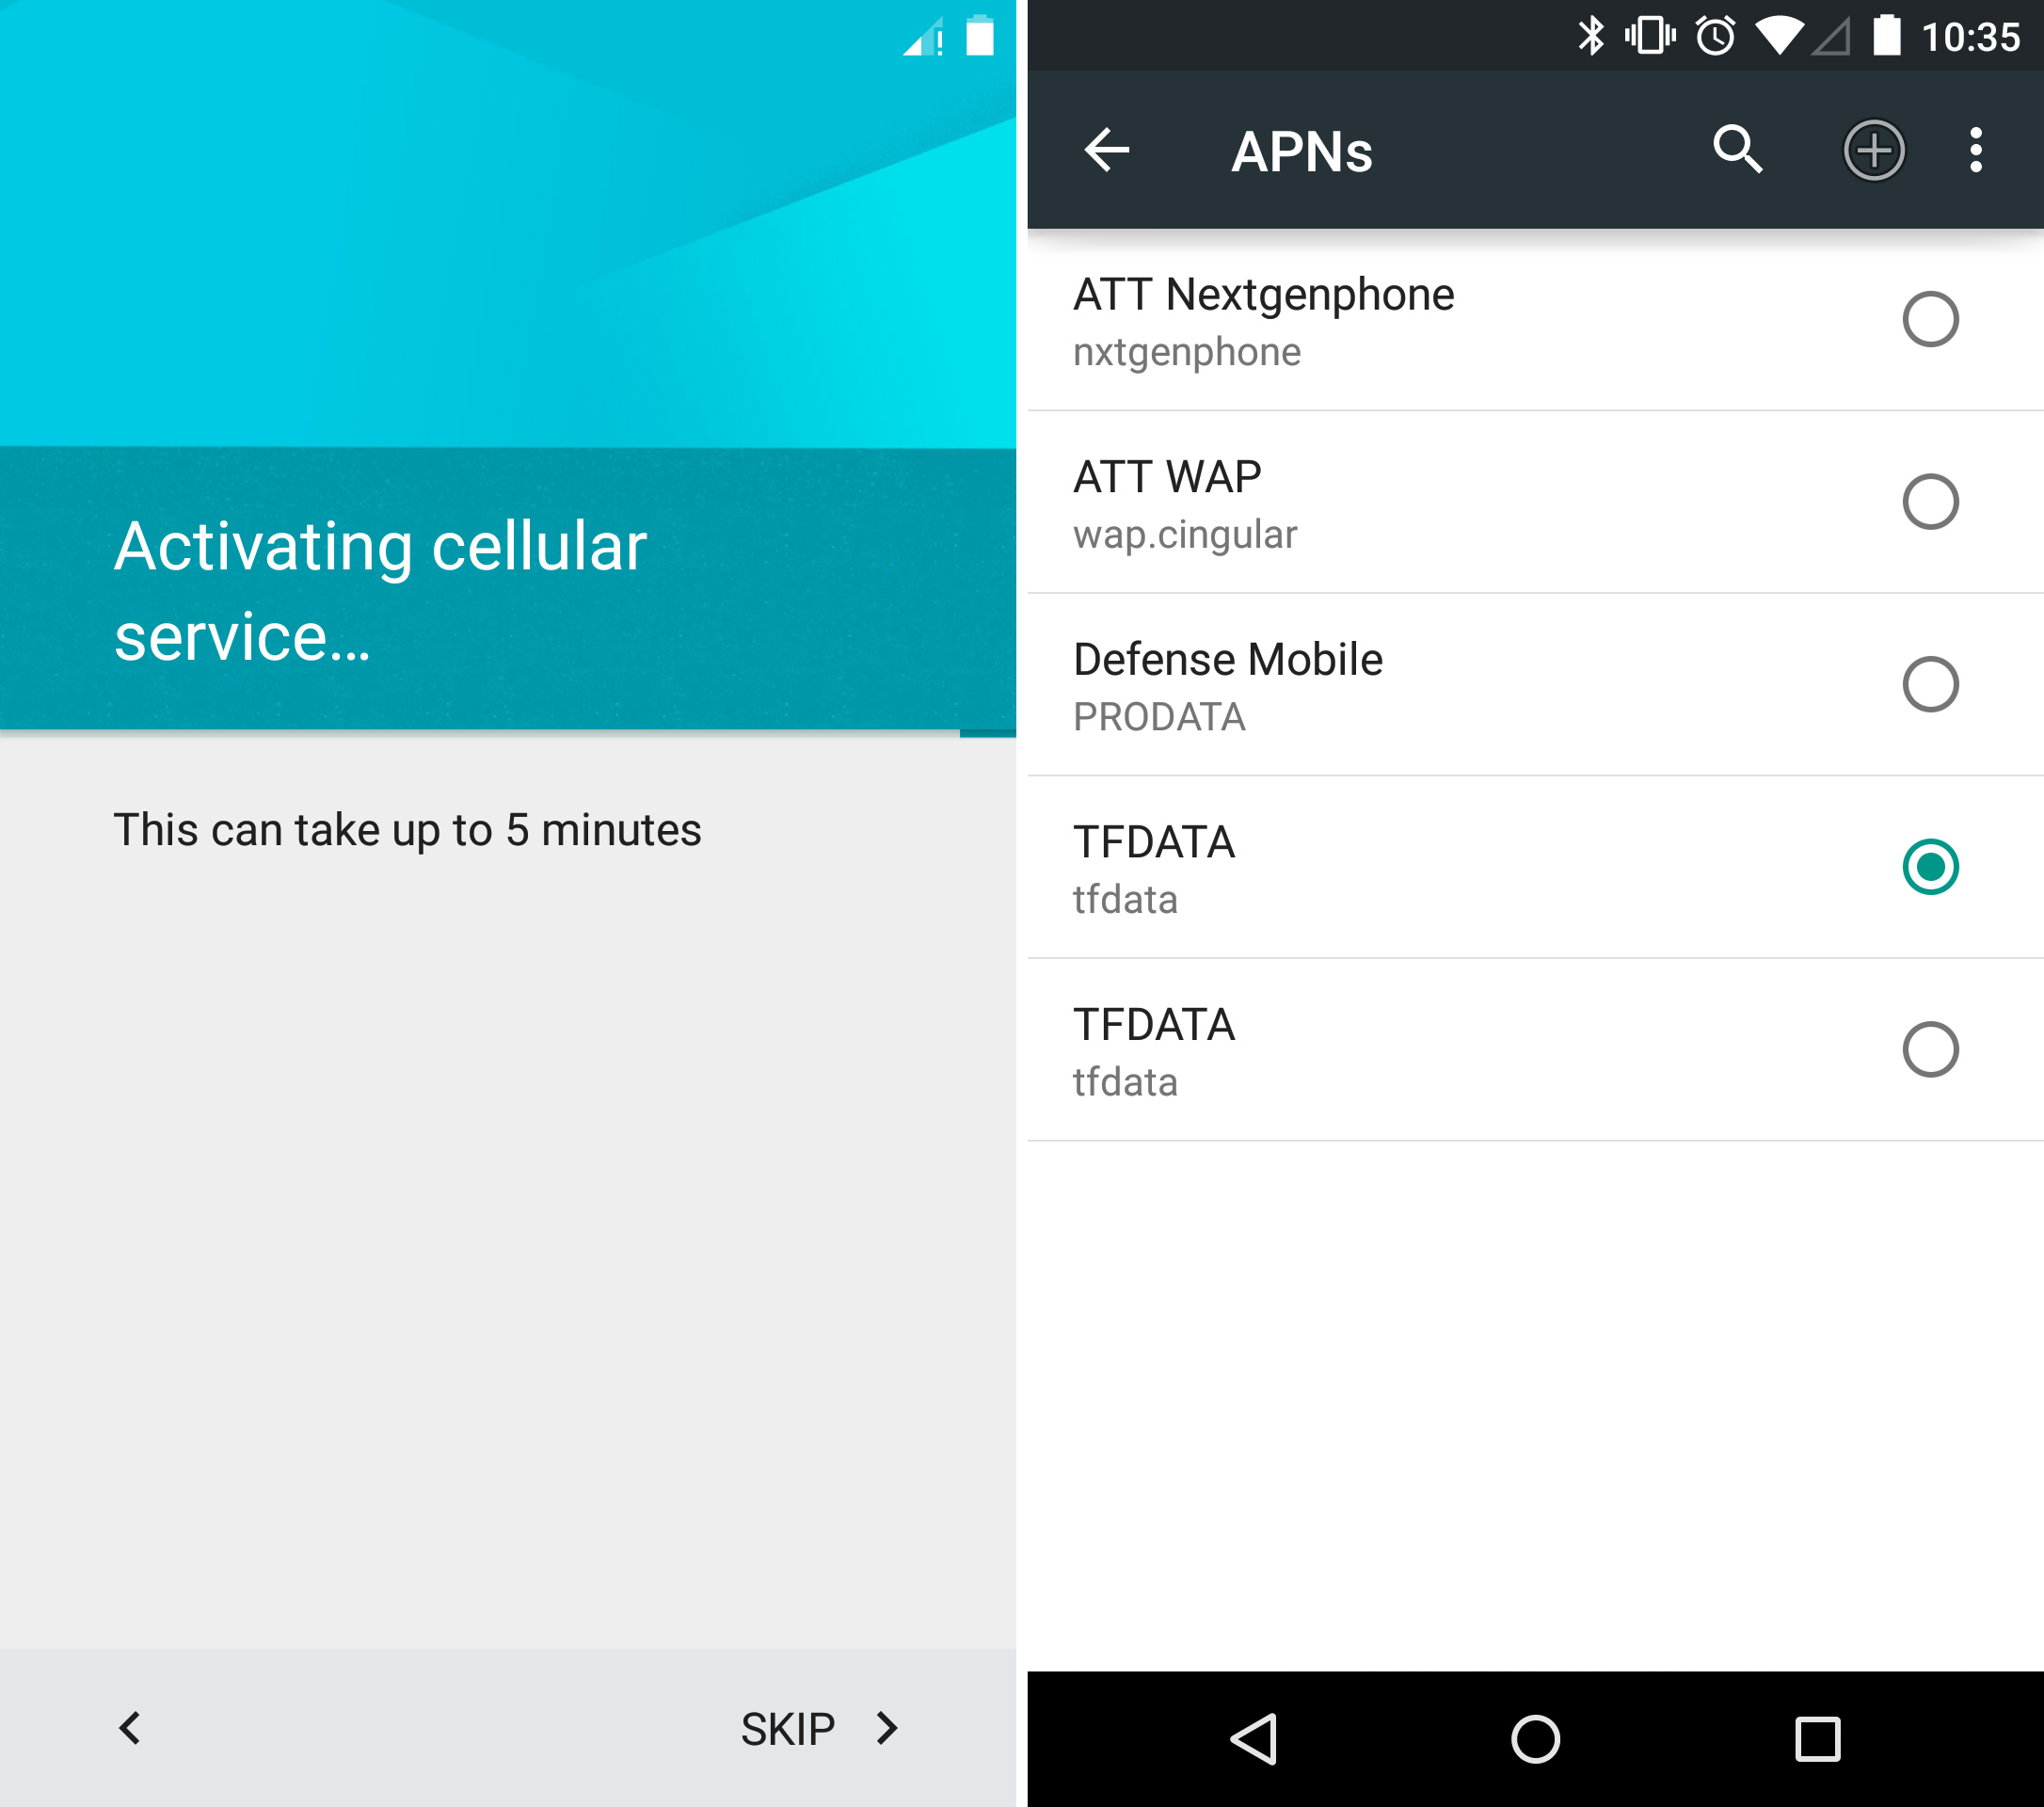 Android 5.0 can automatically figure out your APN settings. Track the settings screen down and you'll see it finds a ton of stuff.